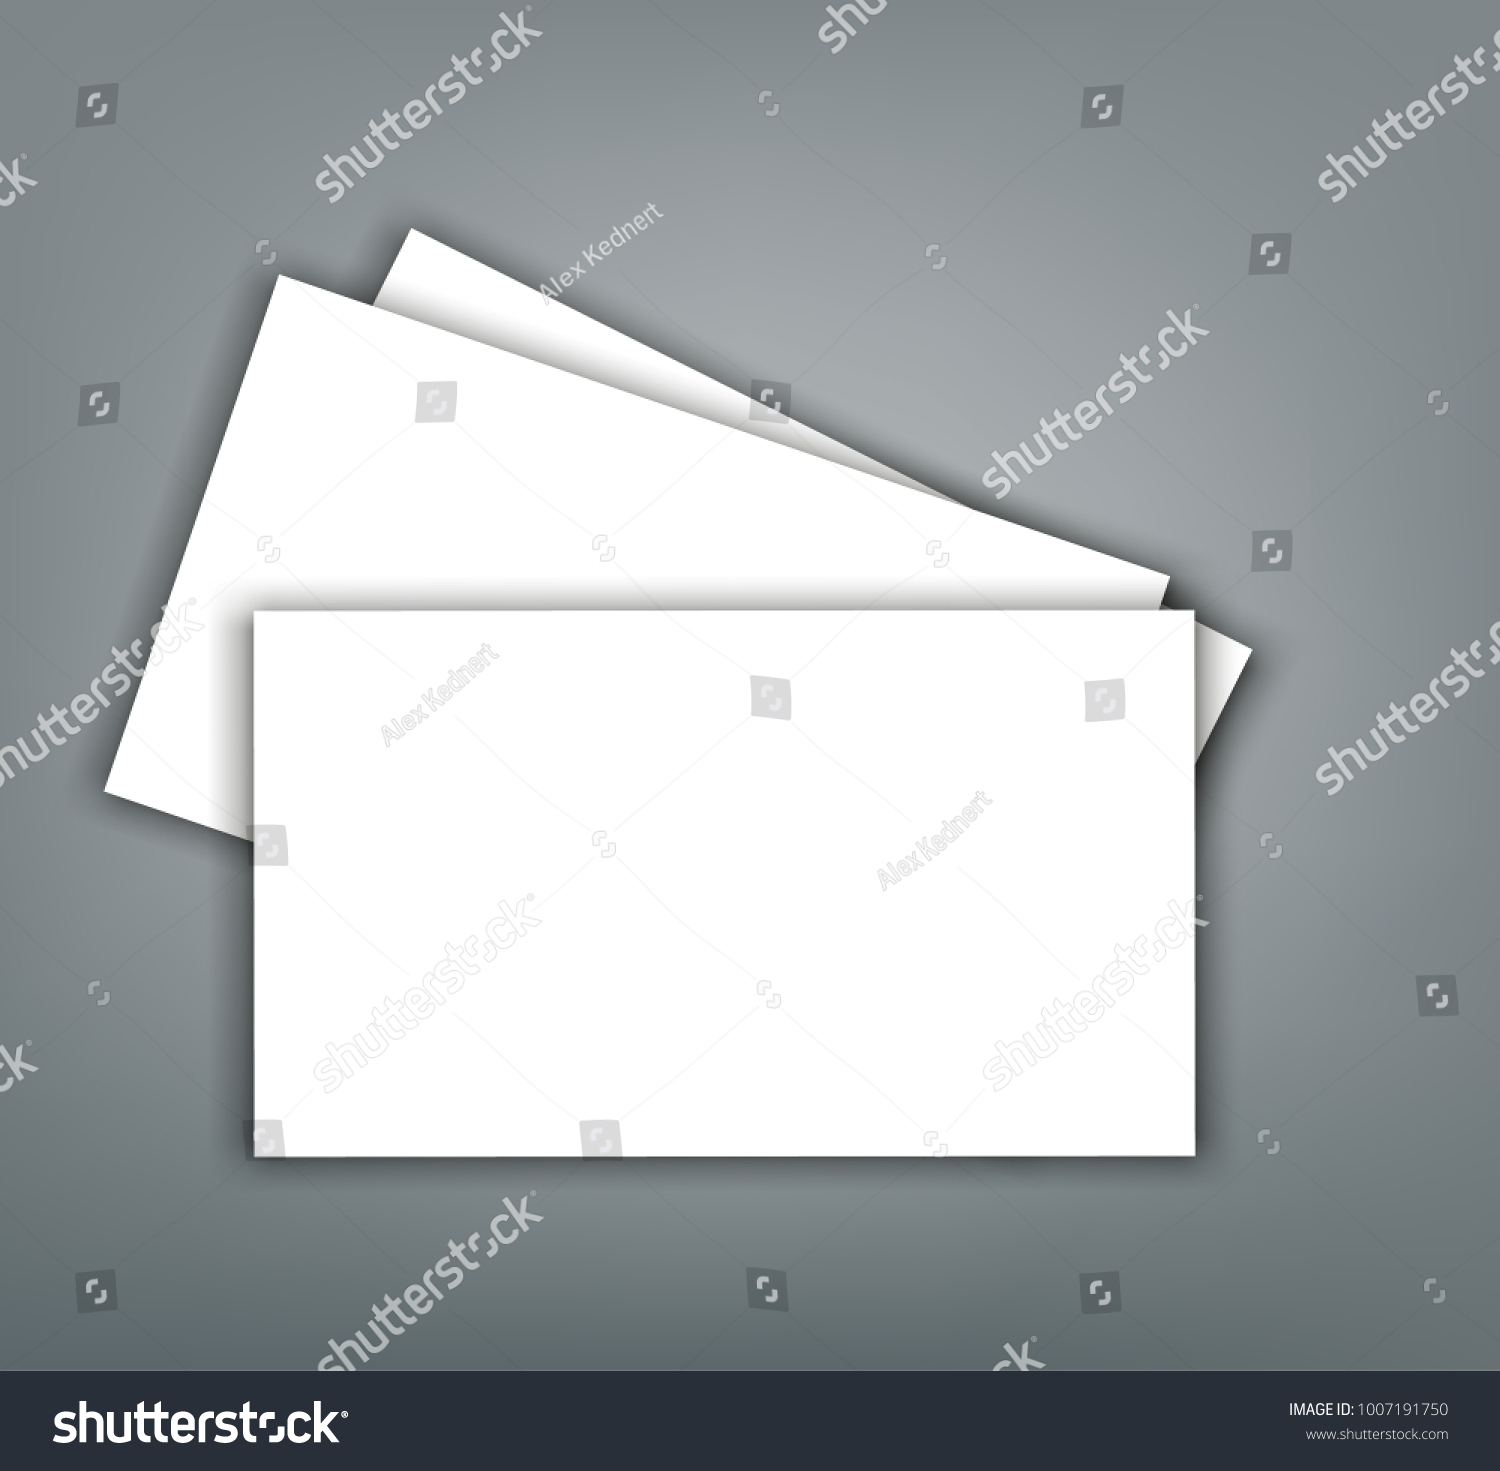 Blank Business Card Shadow Mockup Cover Stock Vector 1007191750 ...